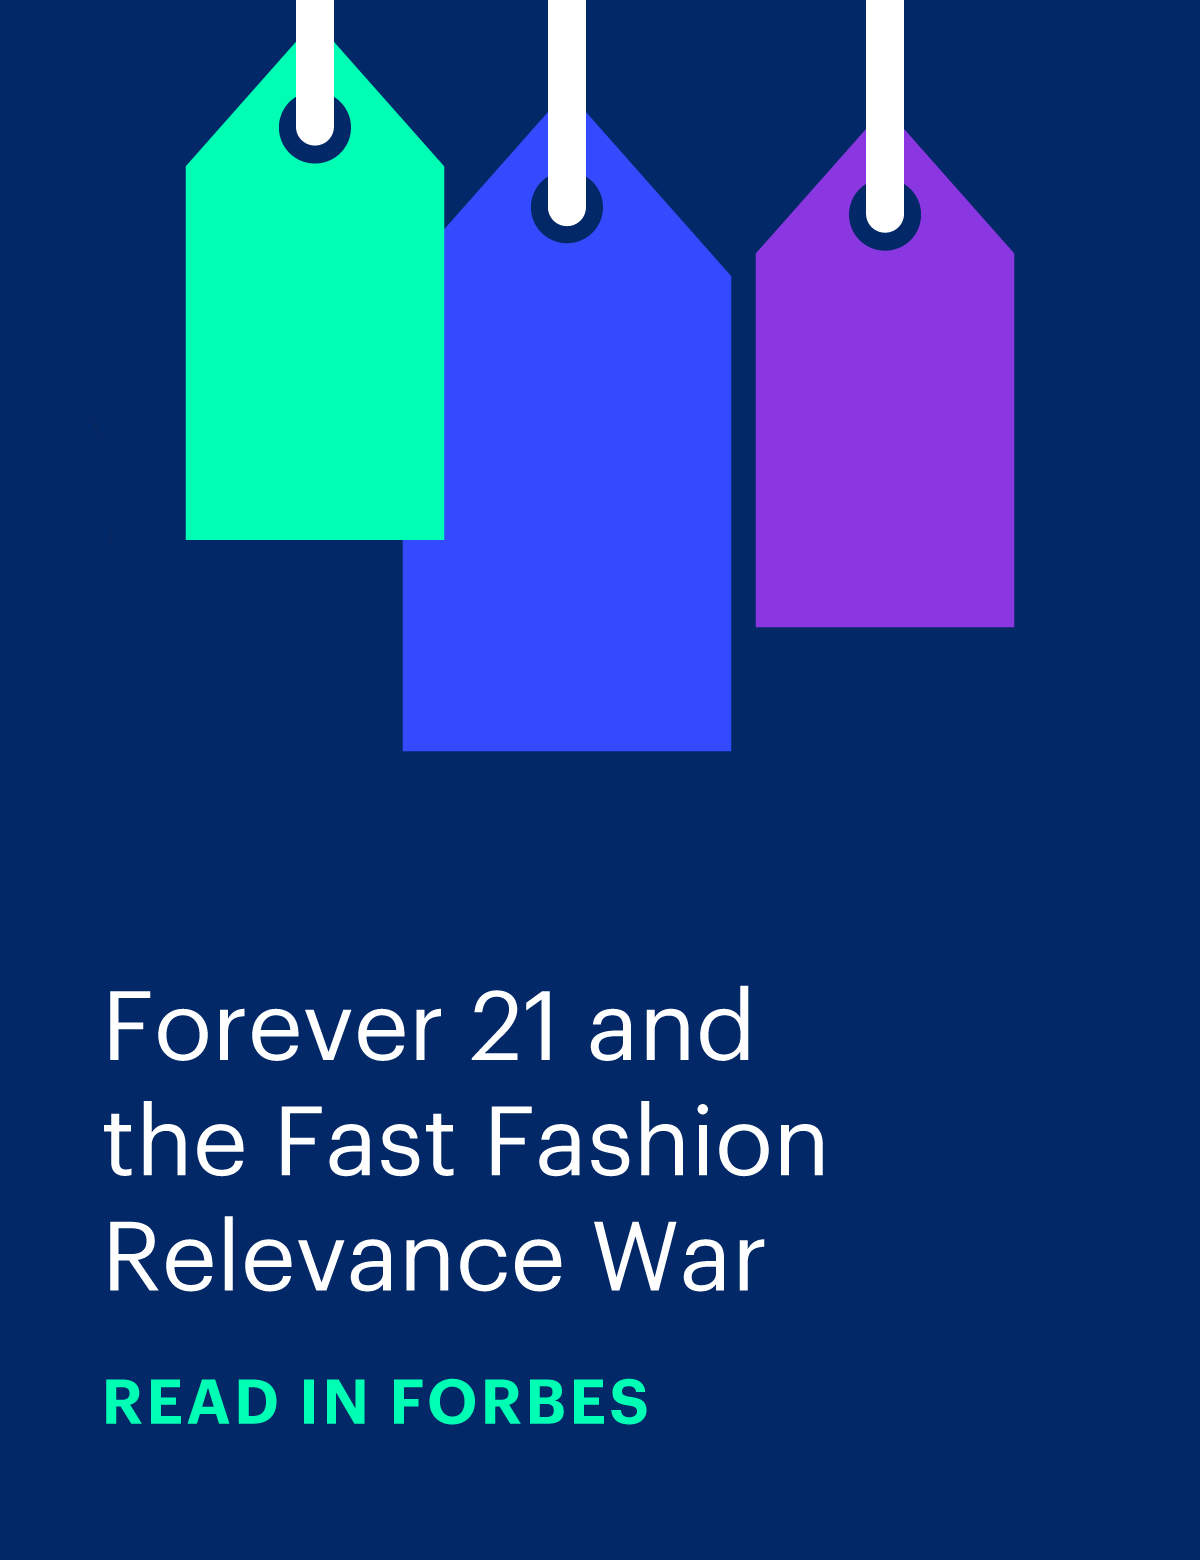 Forever 21 and the Fast Fashion Relevance War